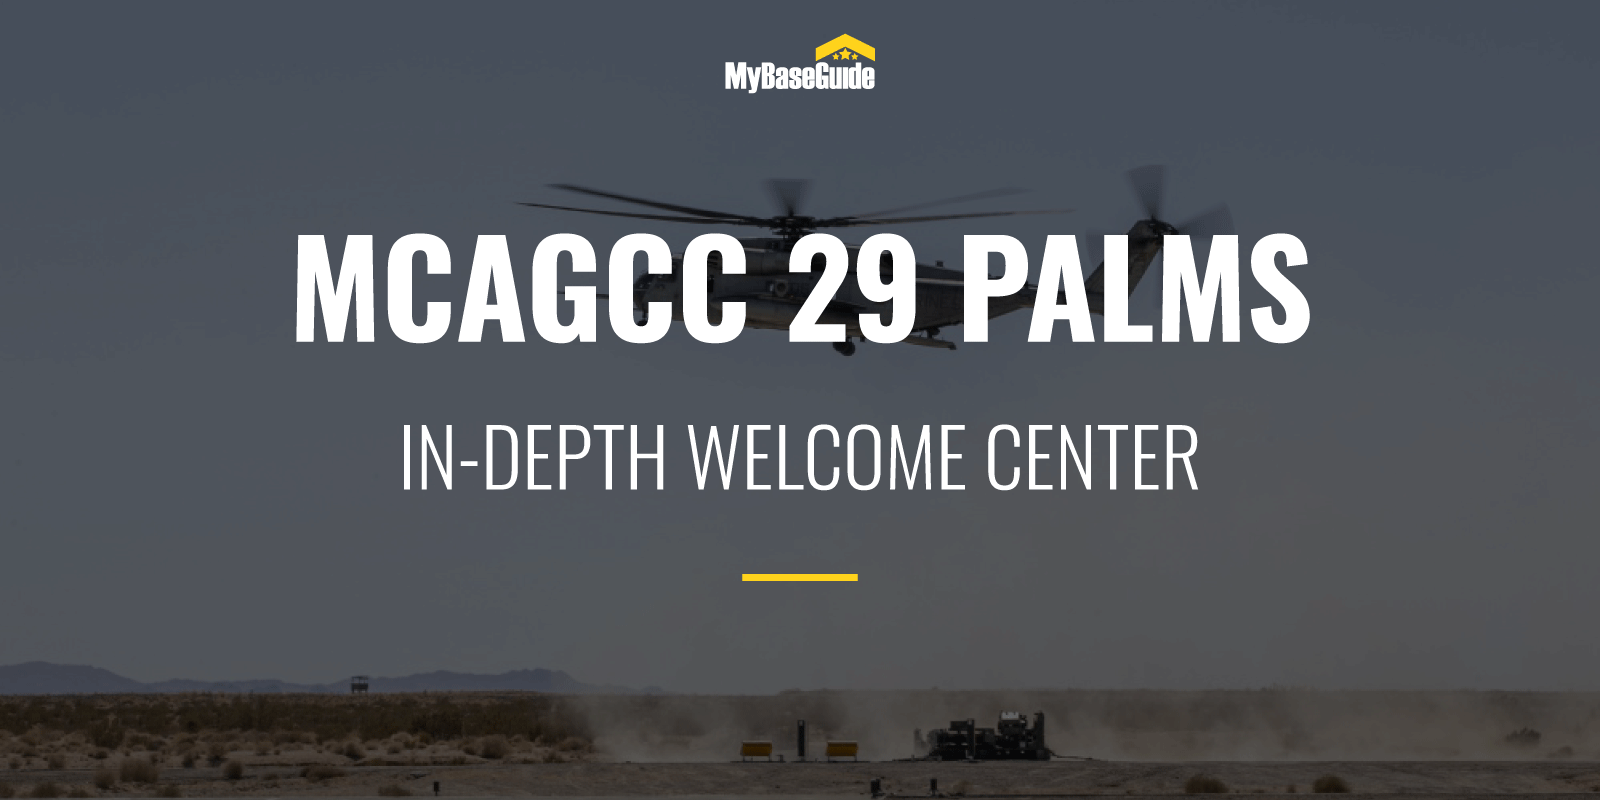 MCAGCC 29 Palms: In-Depth Welcome Center